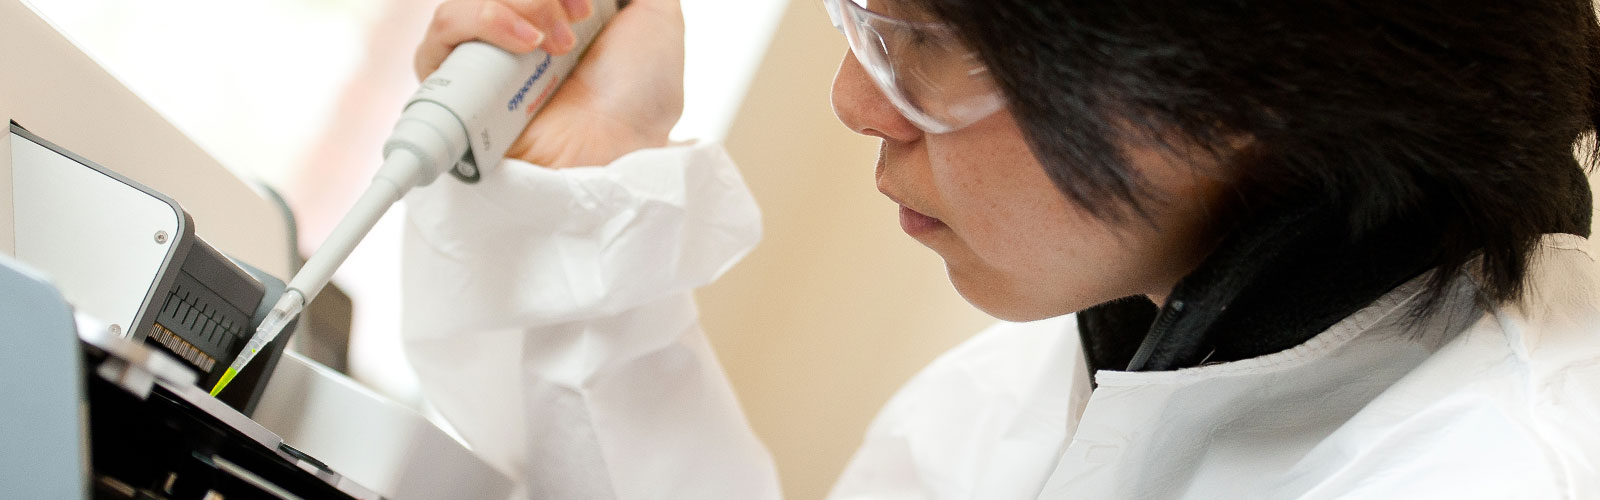 woman in lab coat working with chemicals